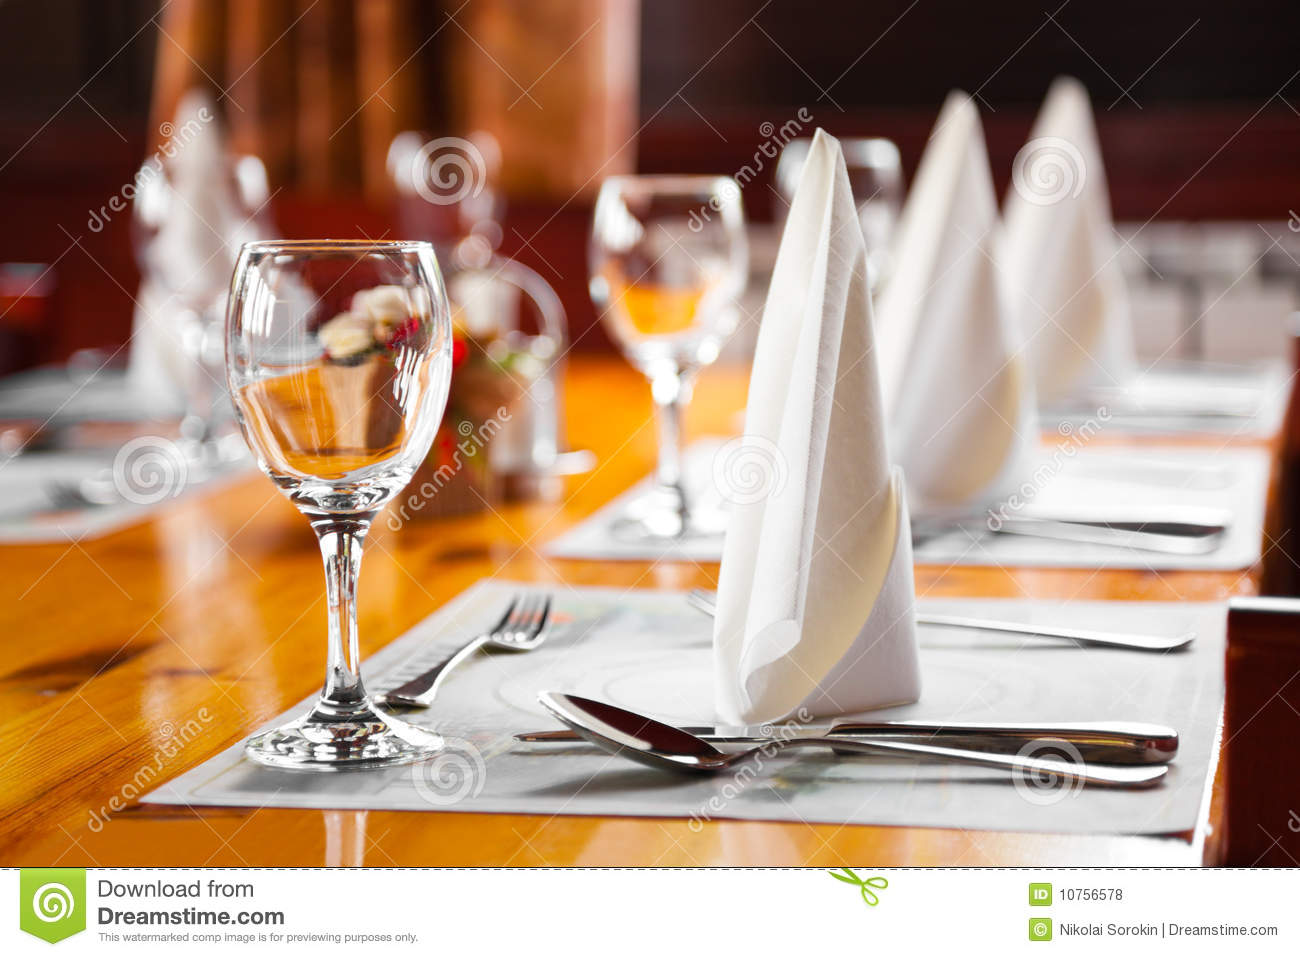 Glasses and plates on table in restaurant stock photo for Restaurant table menu